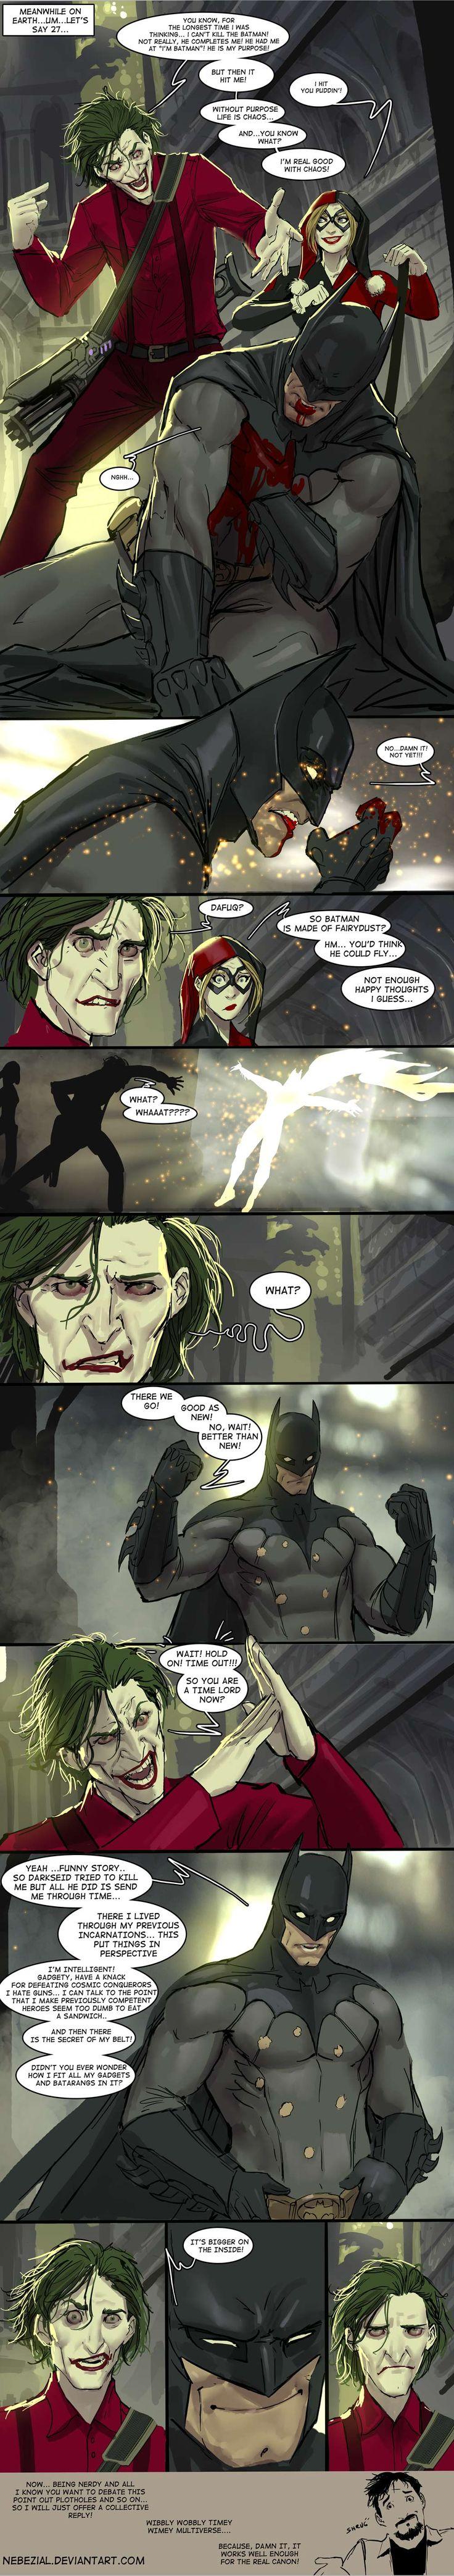 Batman Turns Out To Be A Time Lord In This Hilarious Comic — GeekTyrant